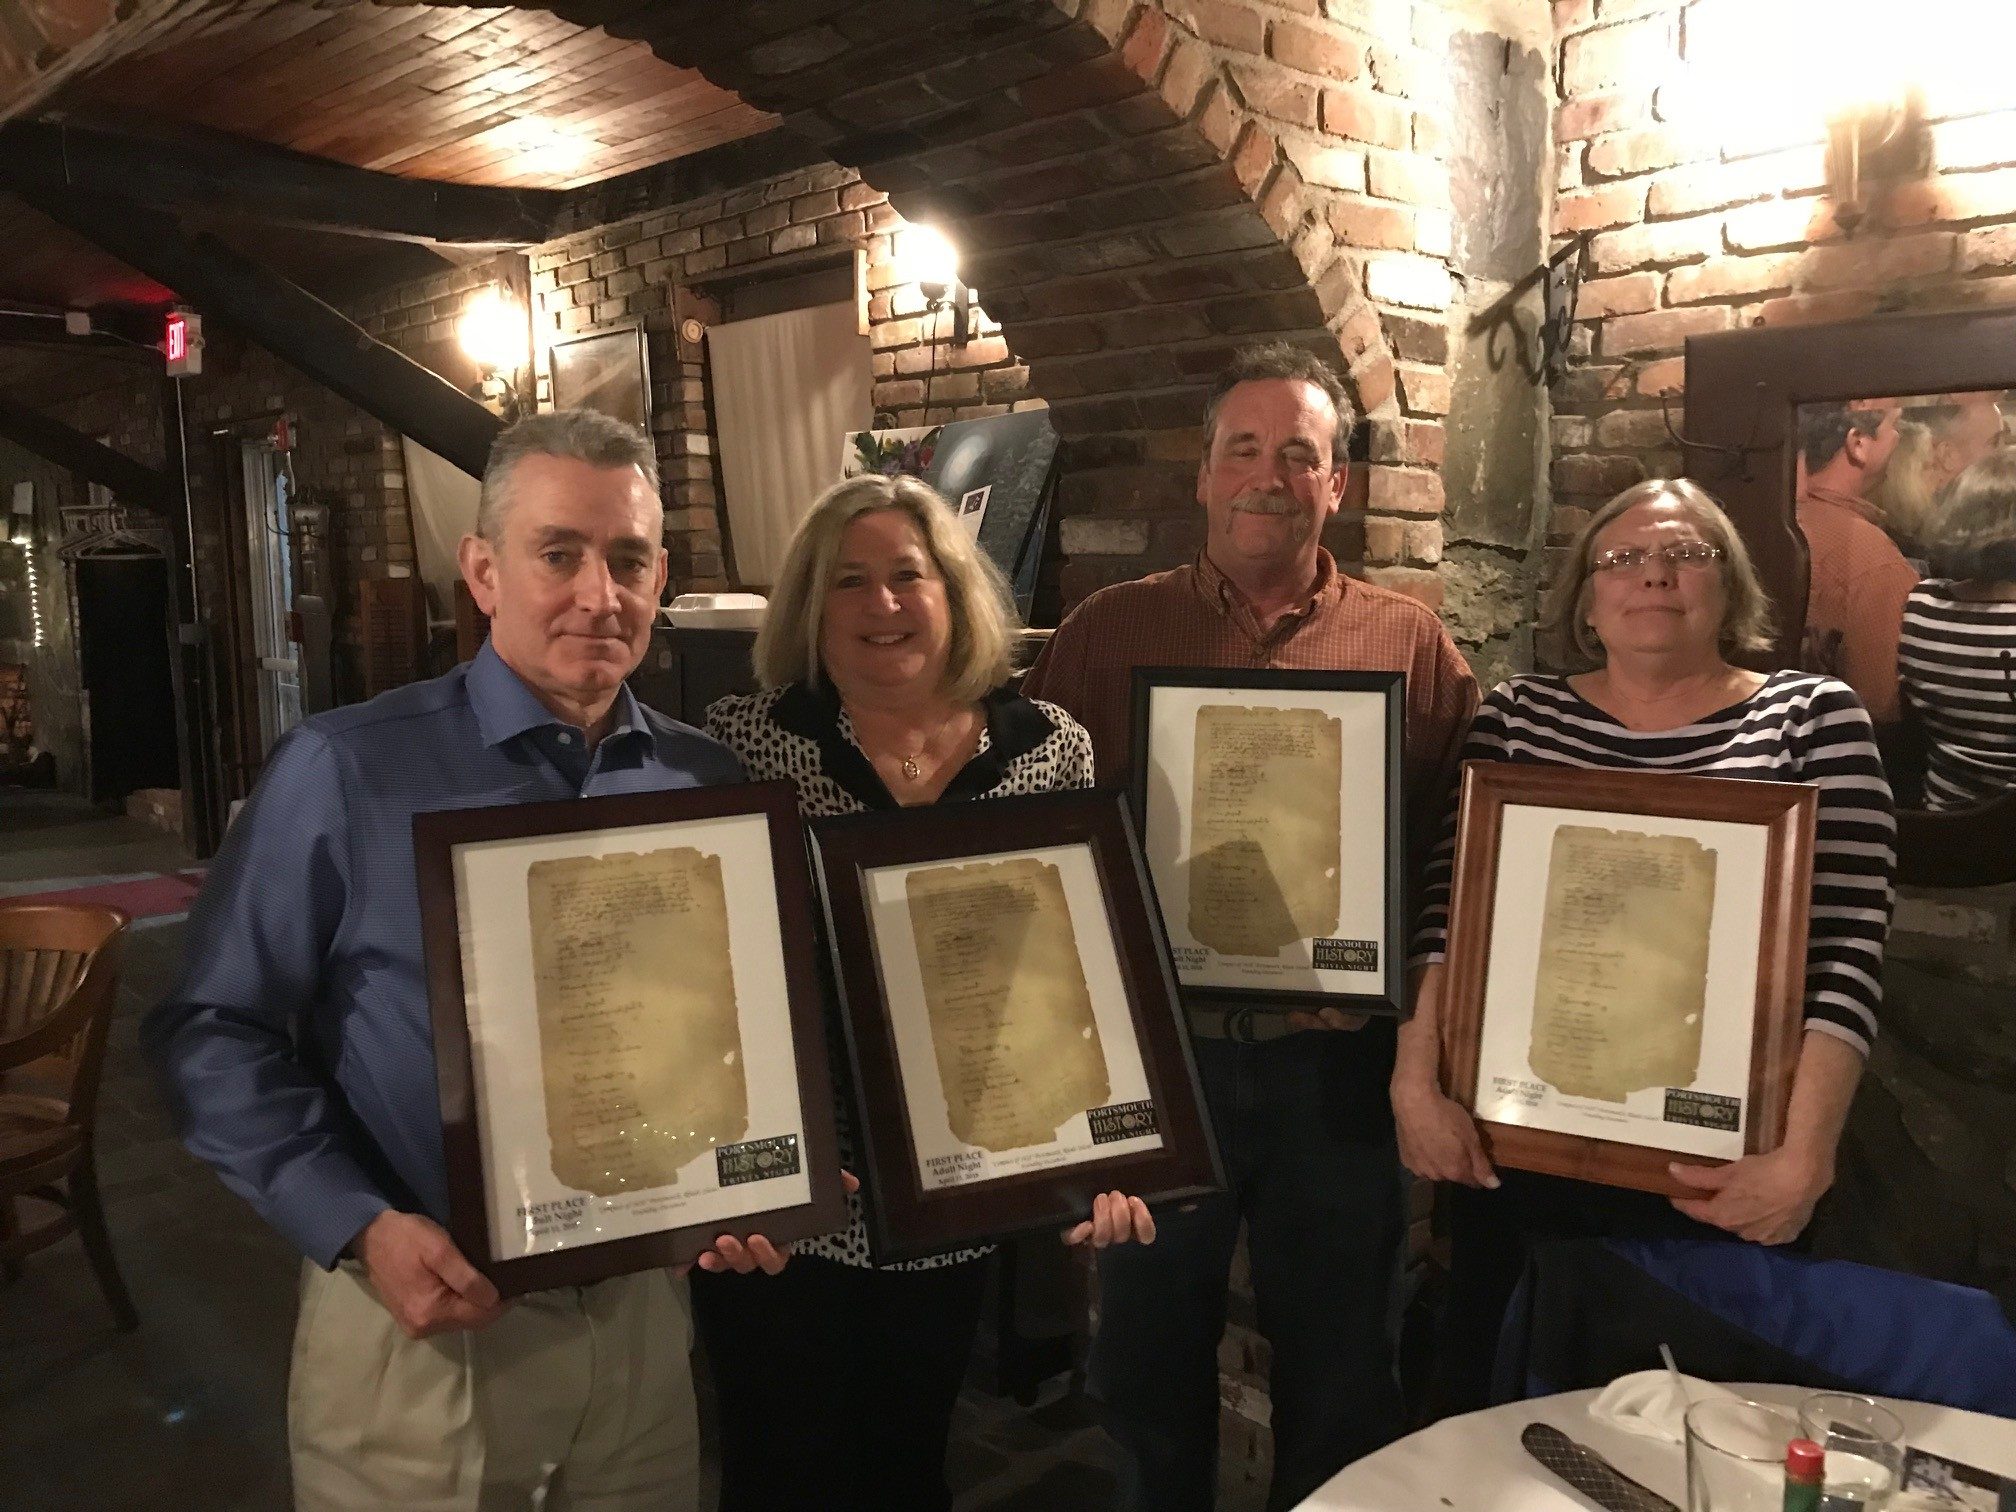 Members of the winning Stone/Thayer team pose with their framed copies of the Portsmouth Compact of 1638. From left are Mark and Terri-Lynn Thayer and Steve and Marcia Stone.